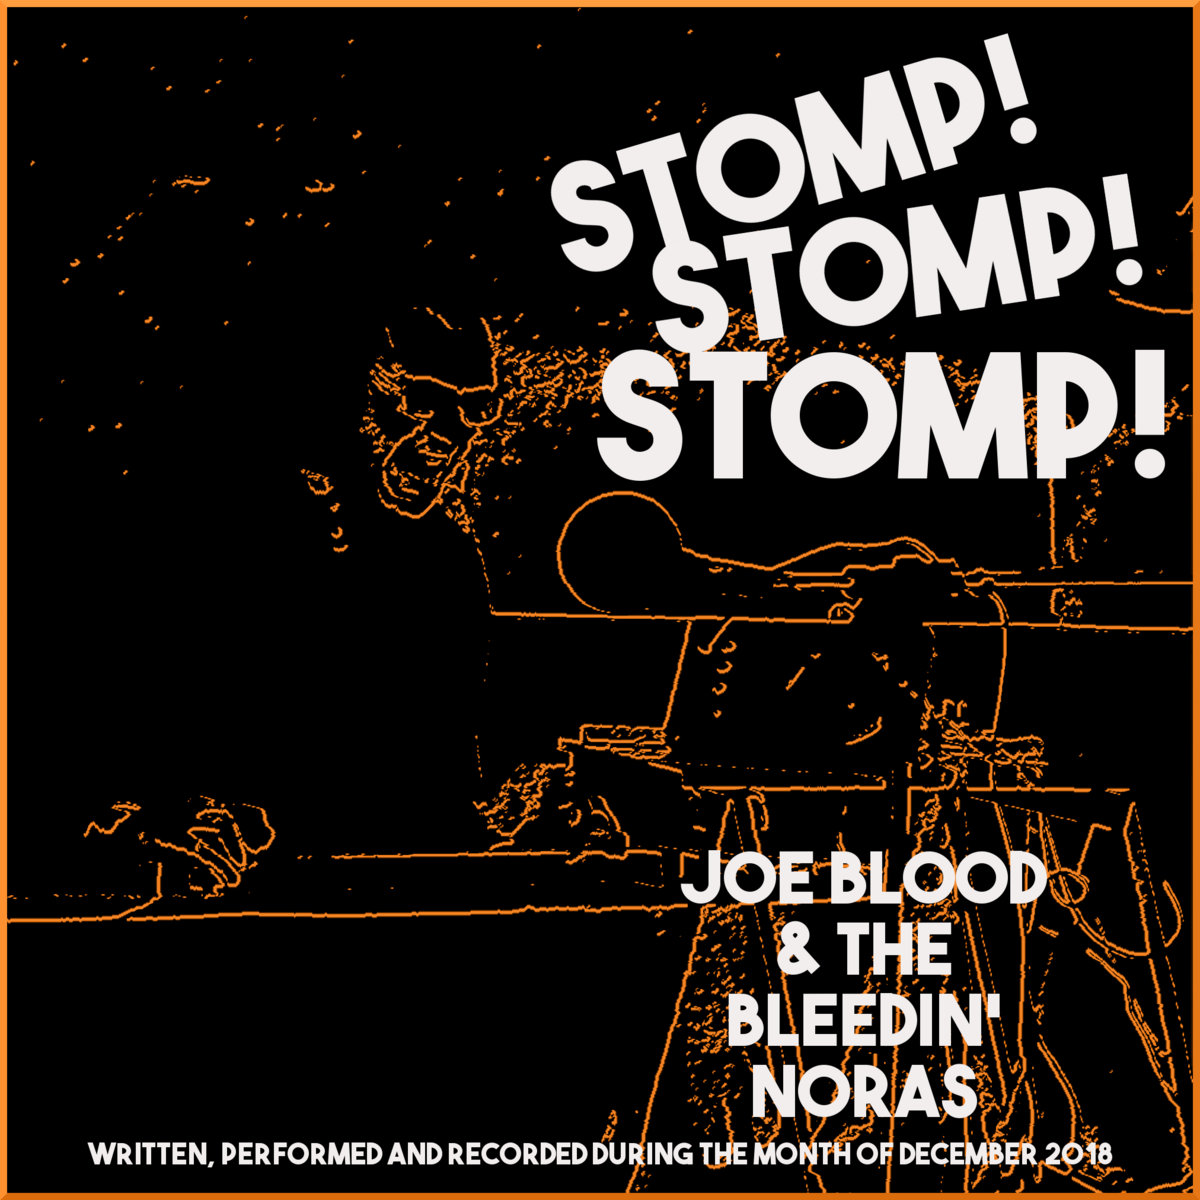 Joe Blood & the Bleedin' Noras – STOMP! STOMP! STOMP!